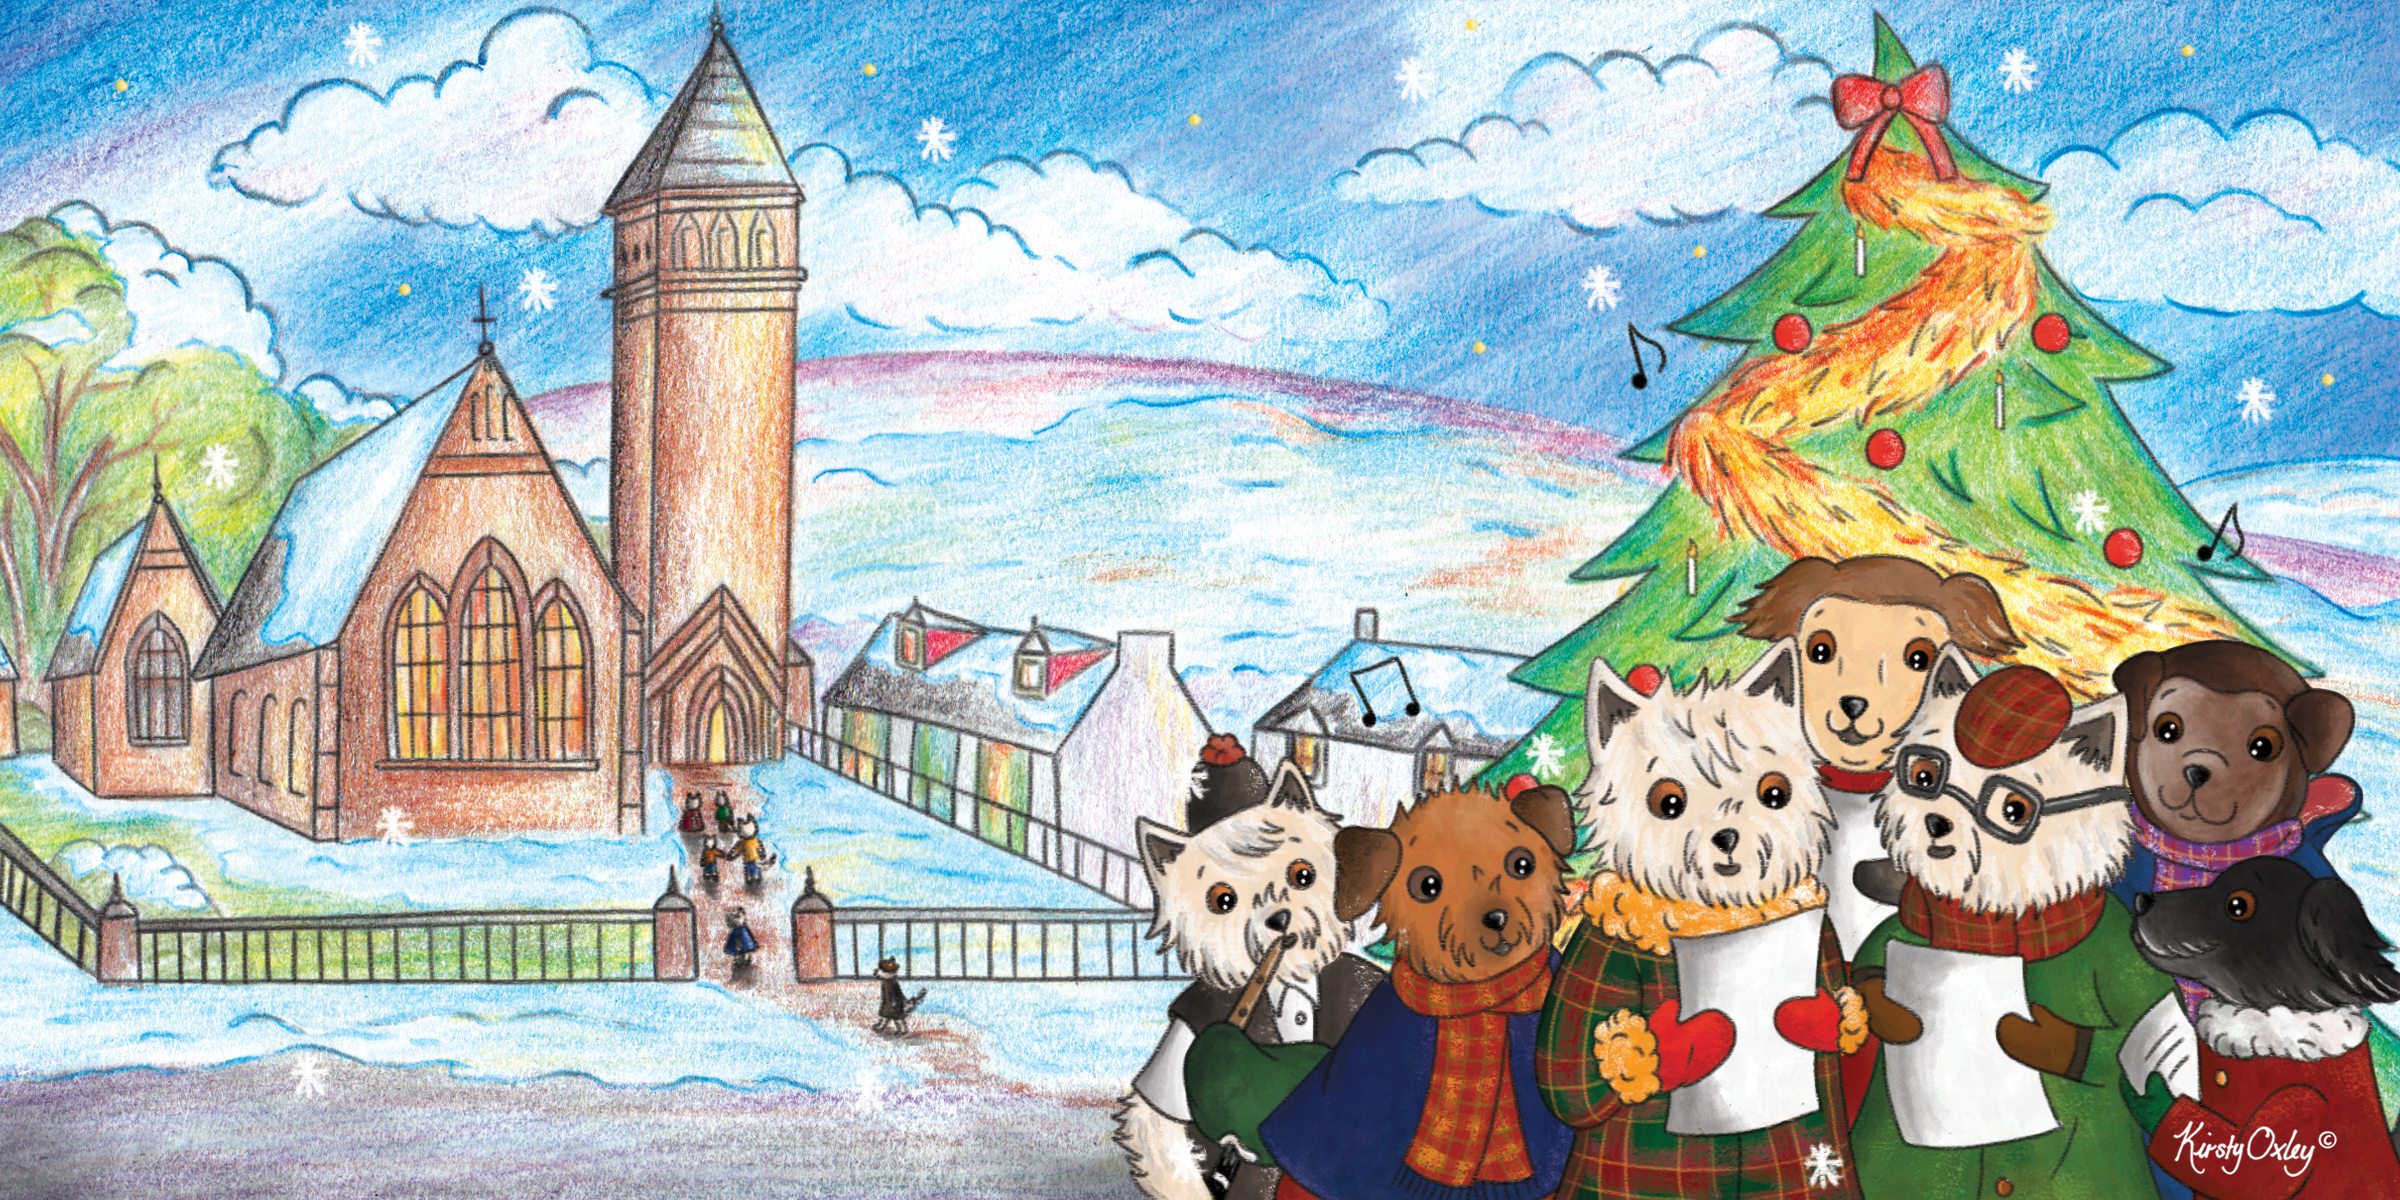 Corries Capers Christmas Card Final 26.09.18 signature.jpg